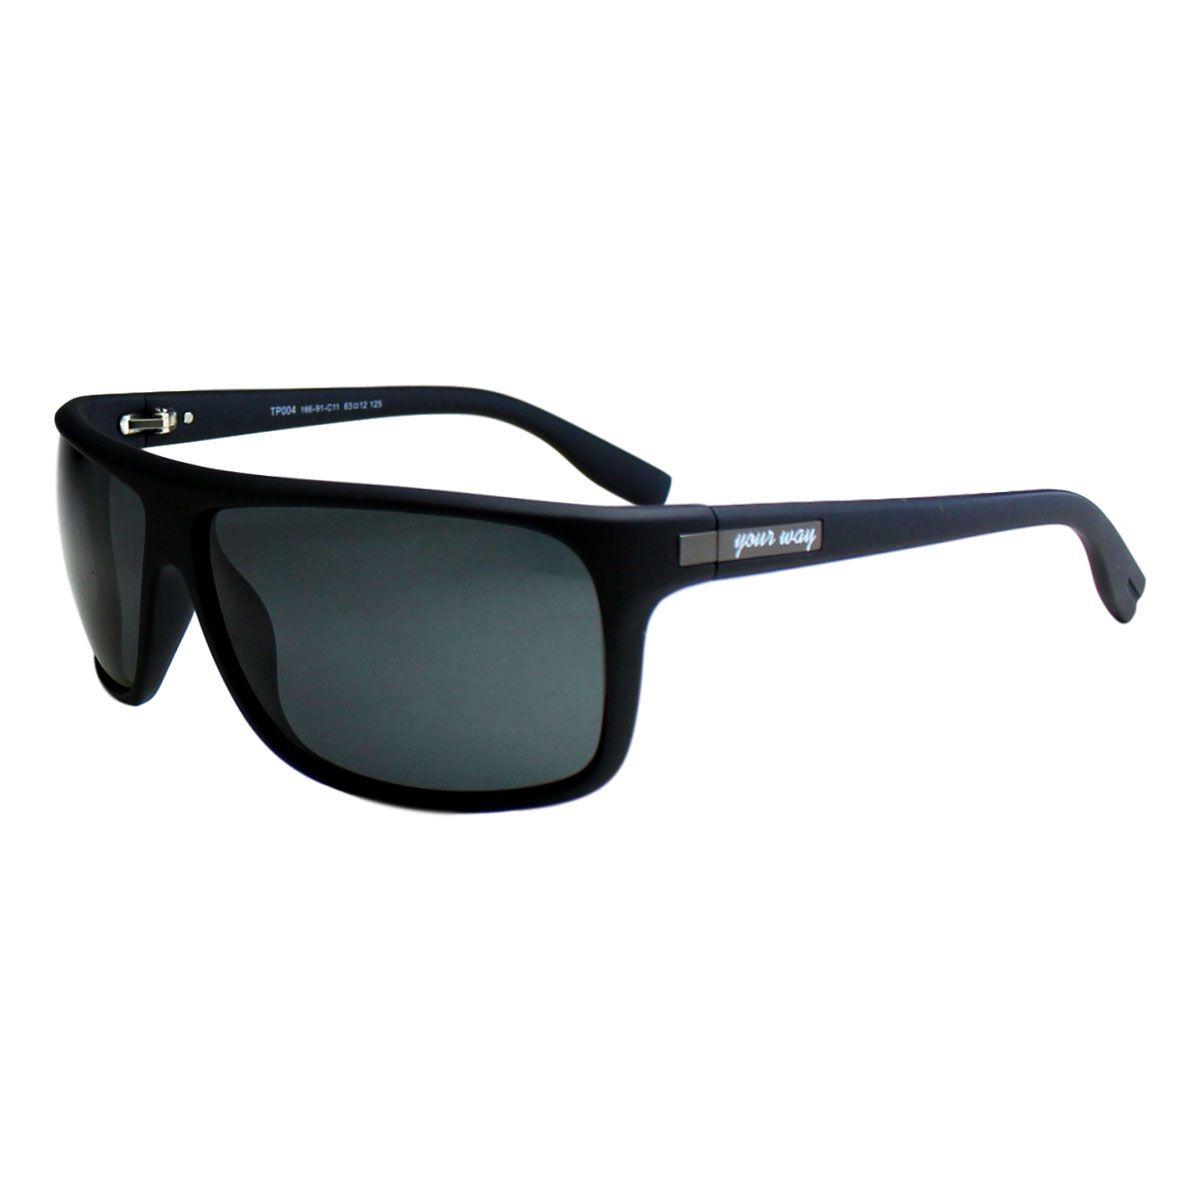 Óculos de sol Your Way 4287YW Lentes Polarizadas - Preto